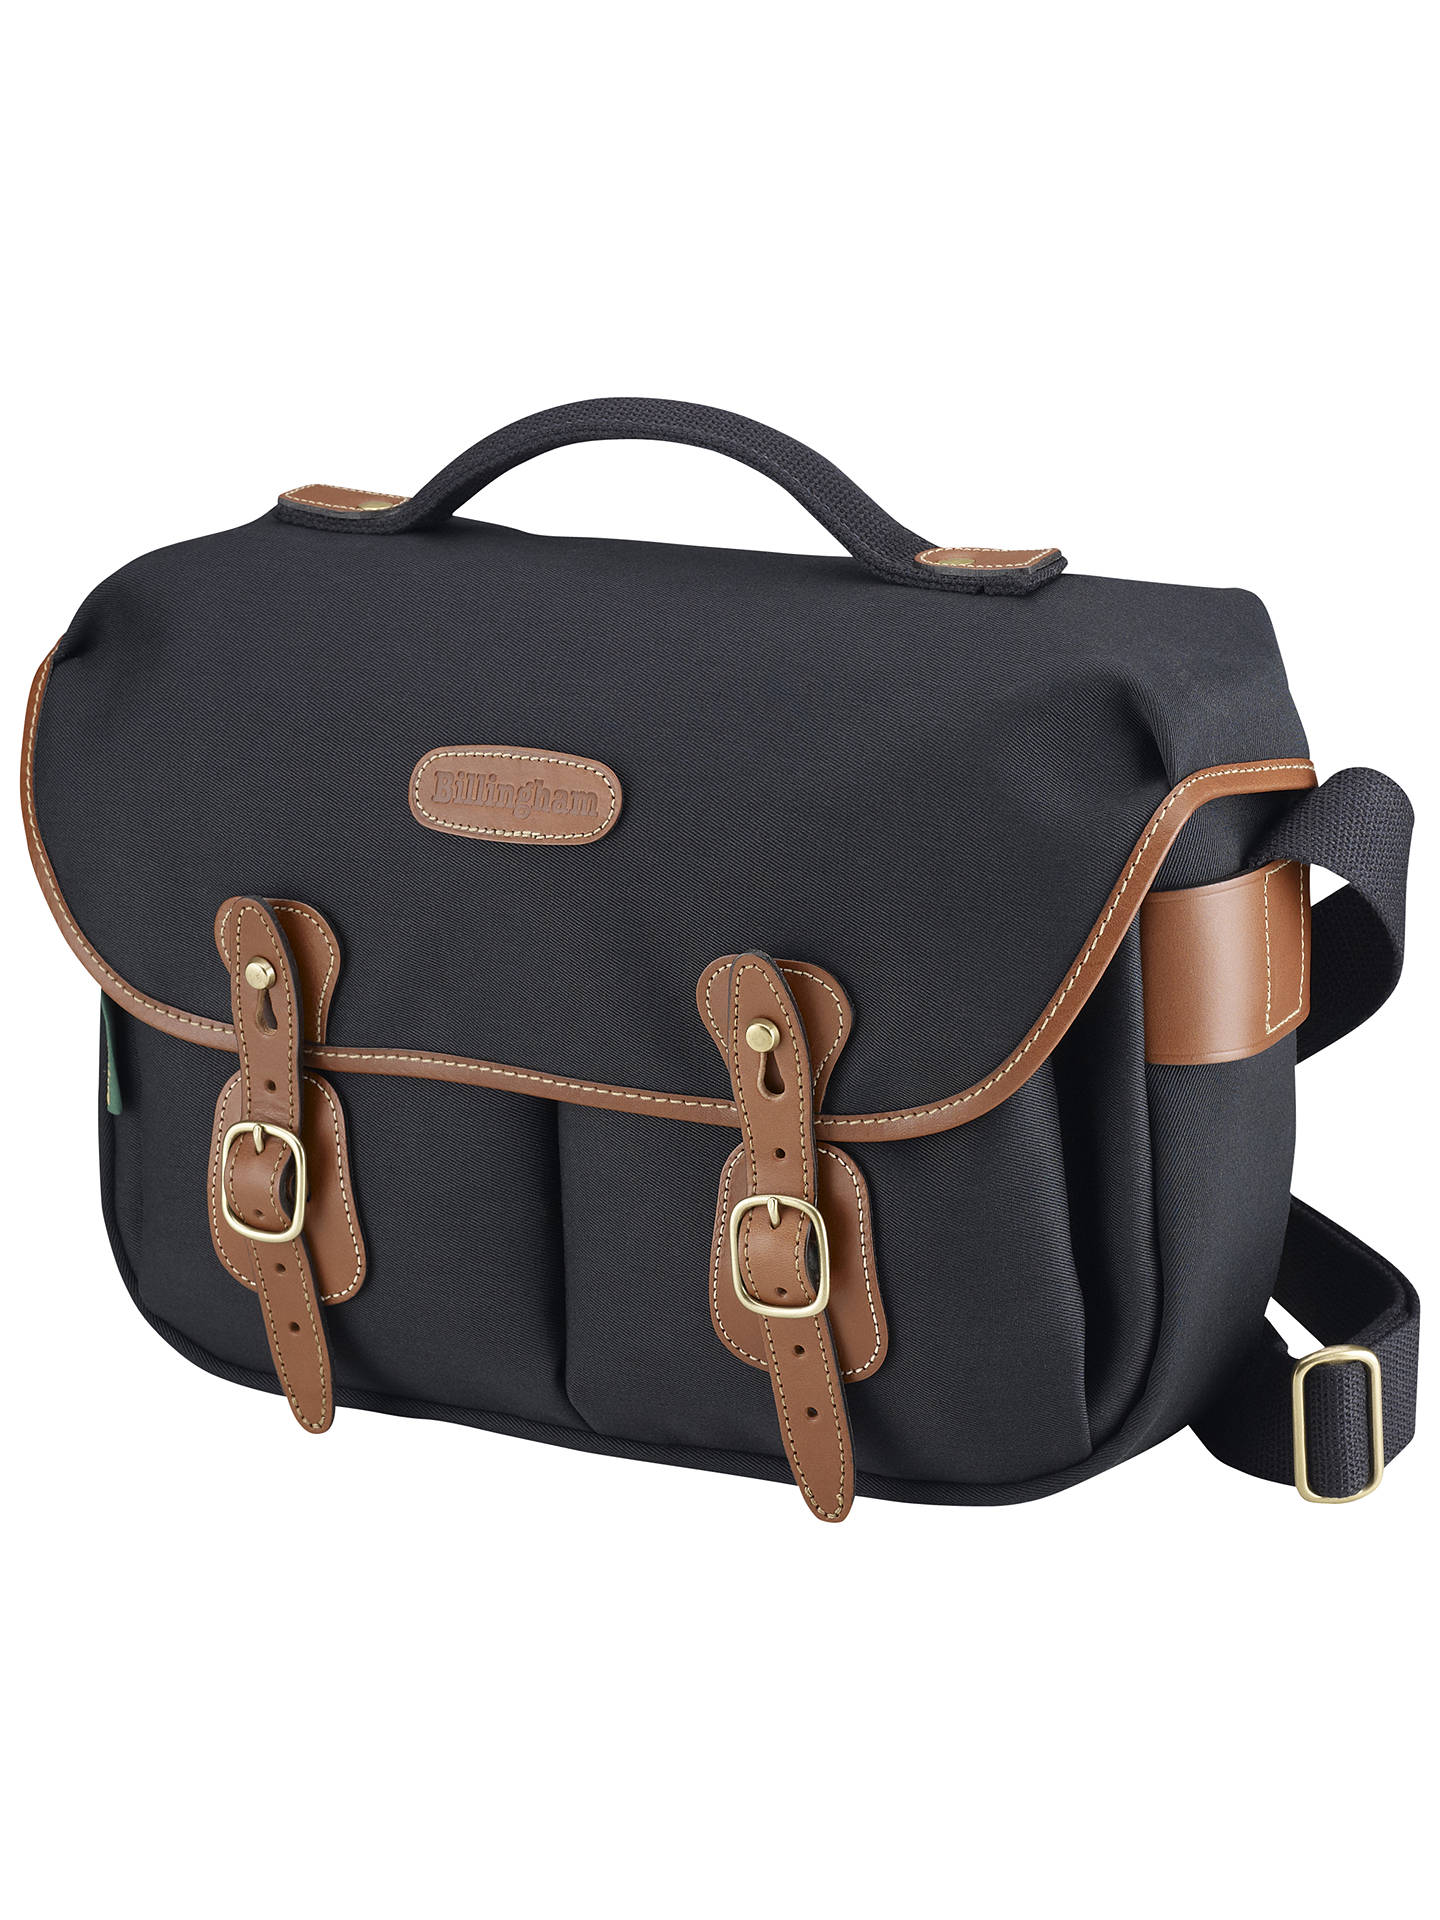 Billingham Hadley Pro Camera Bag For Dslrs Black Tan